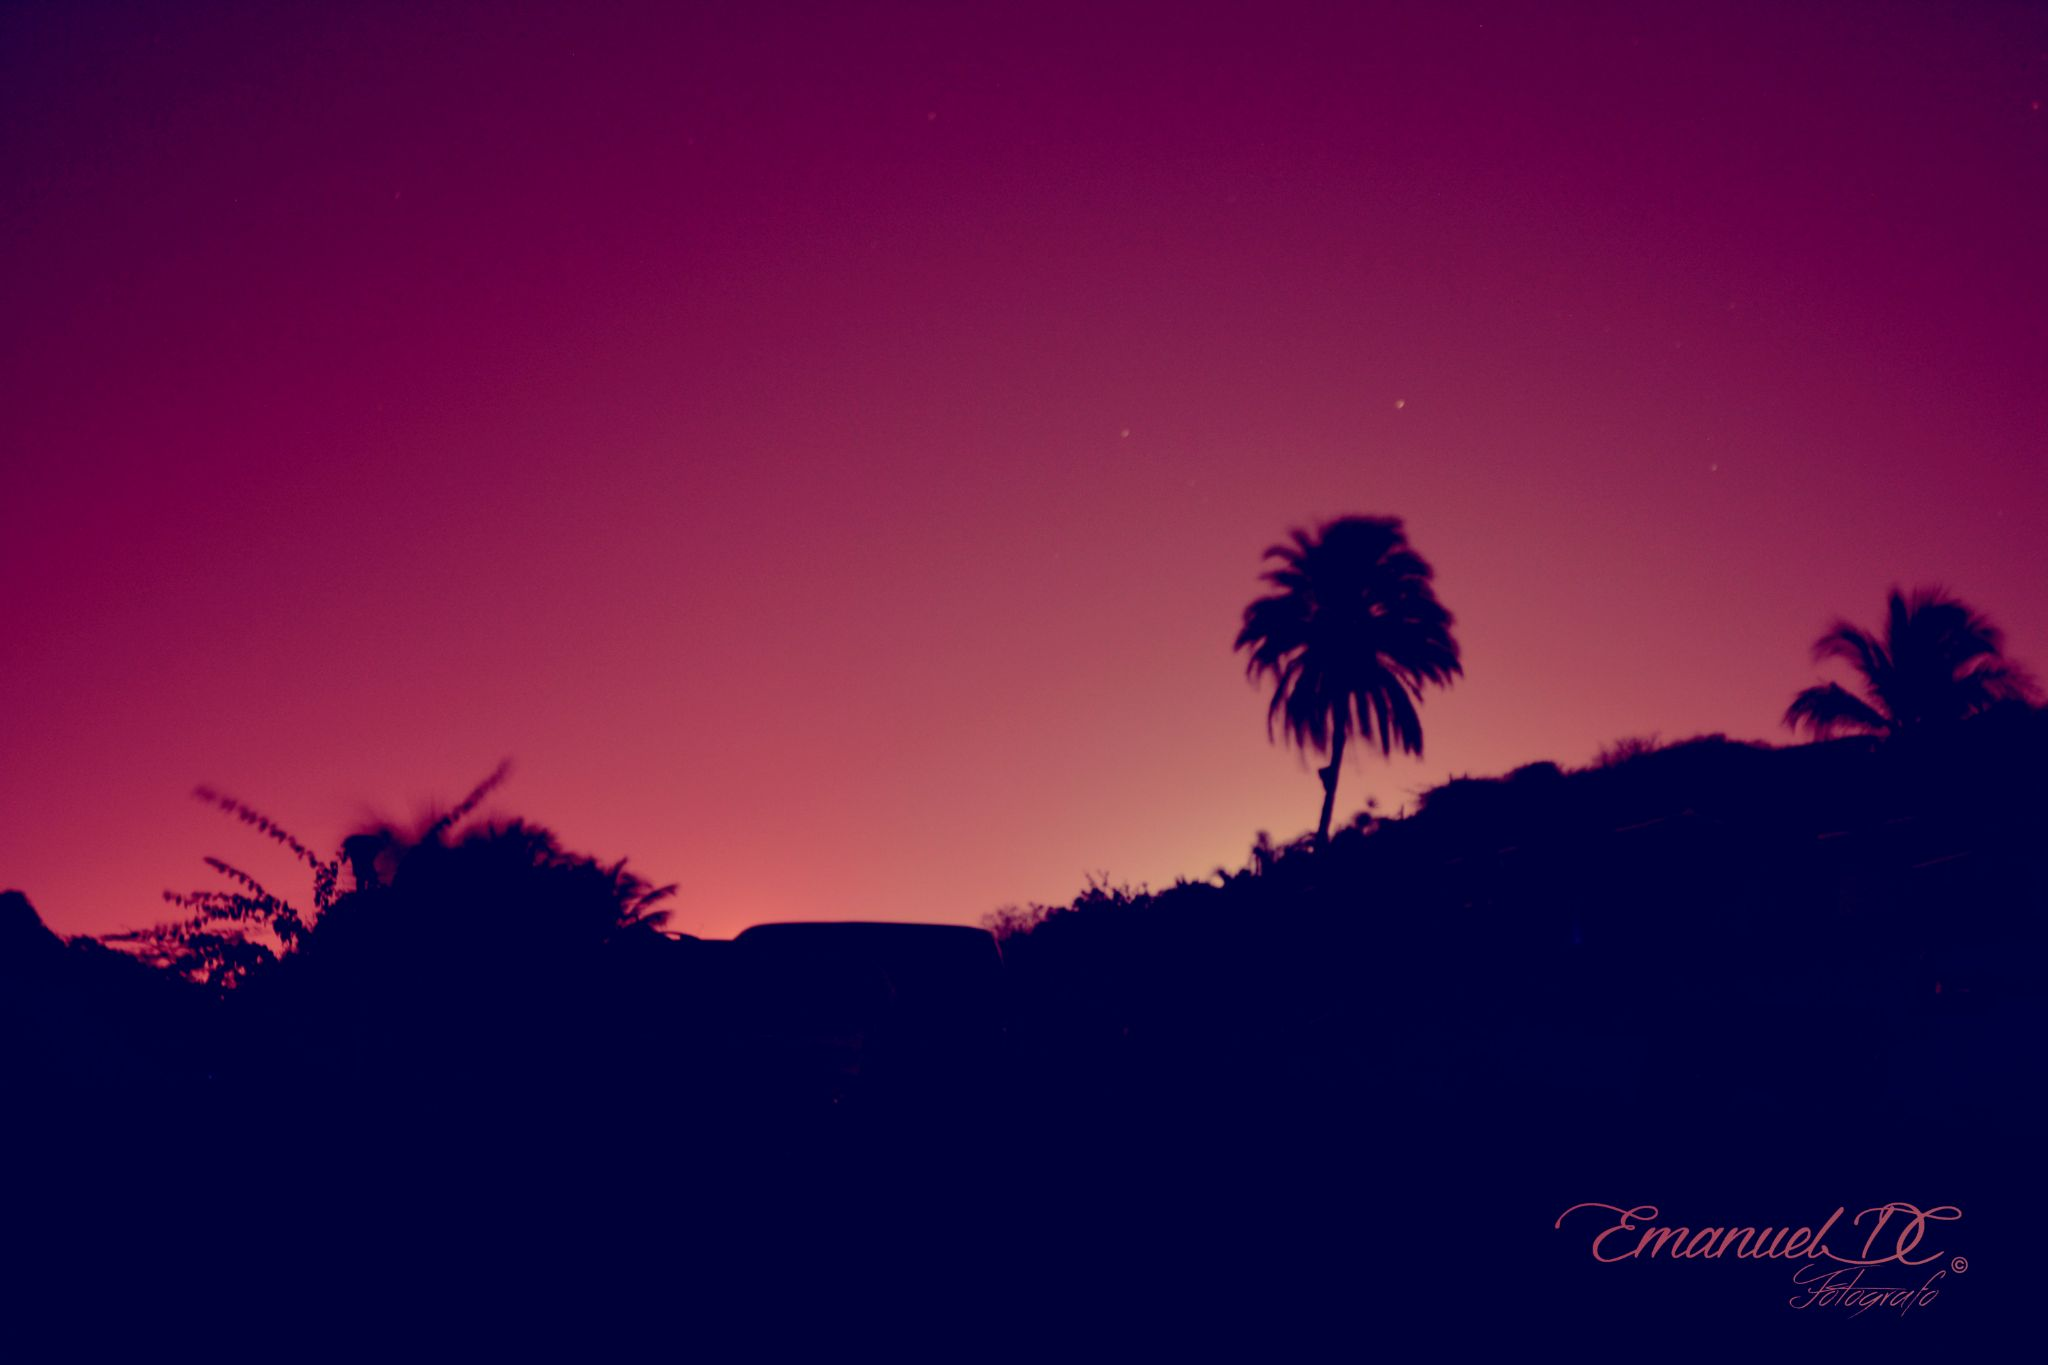 Silhouettes in the Night  by Emanuel DC